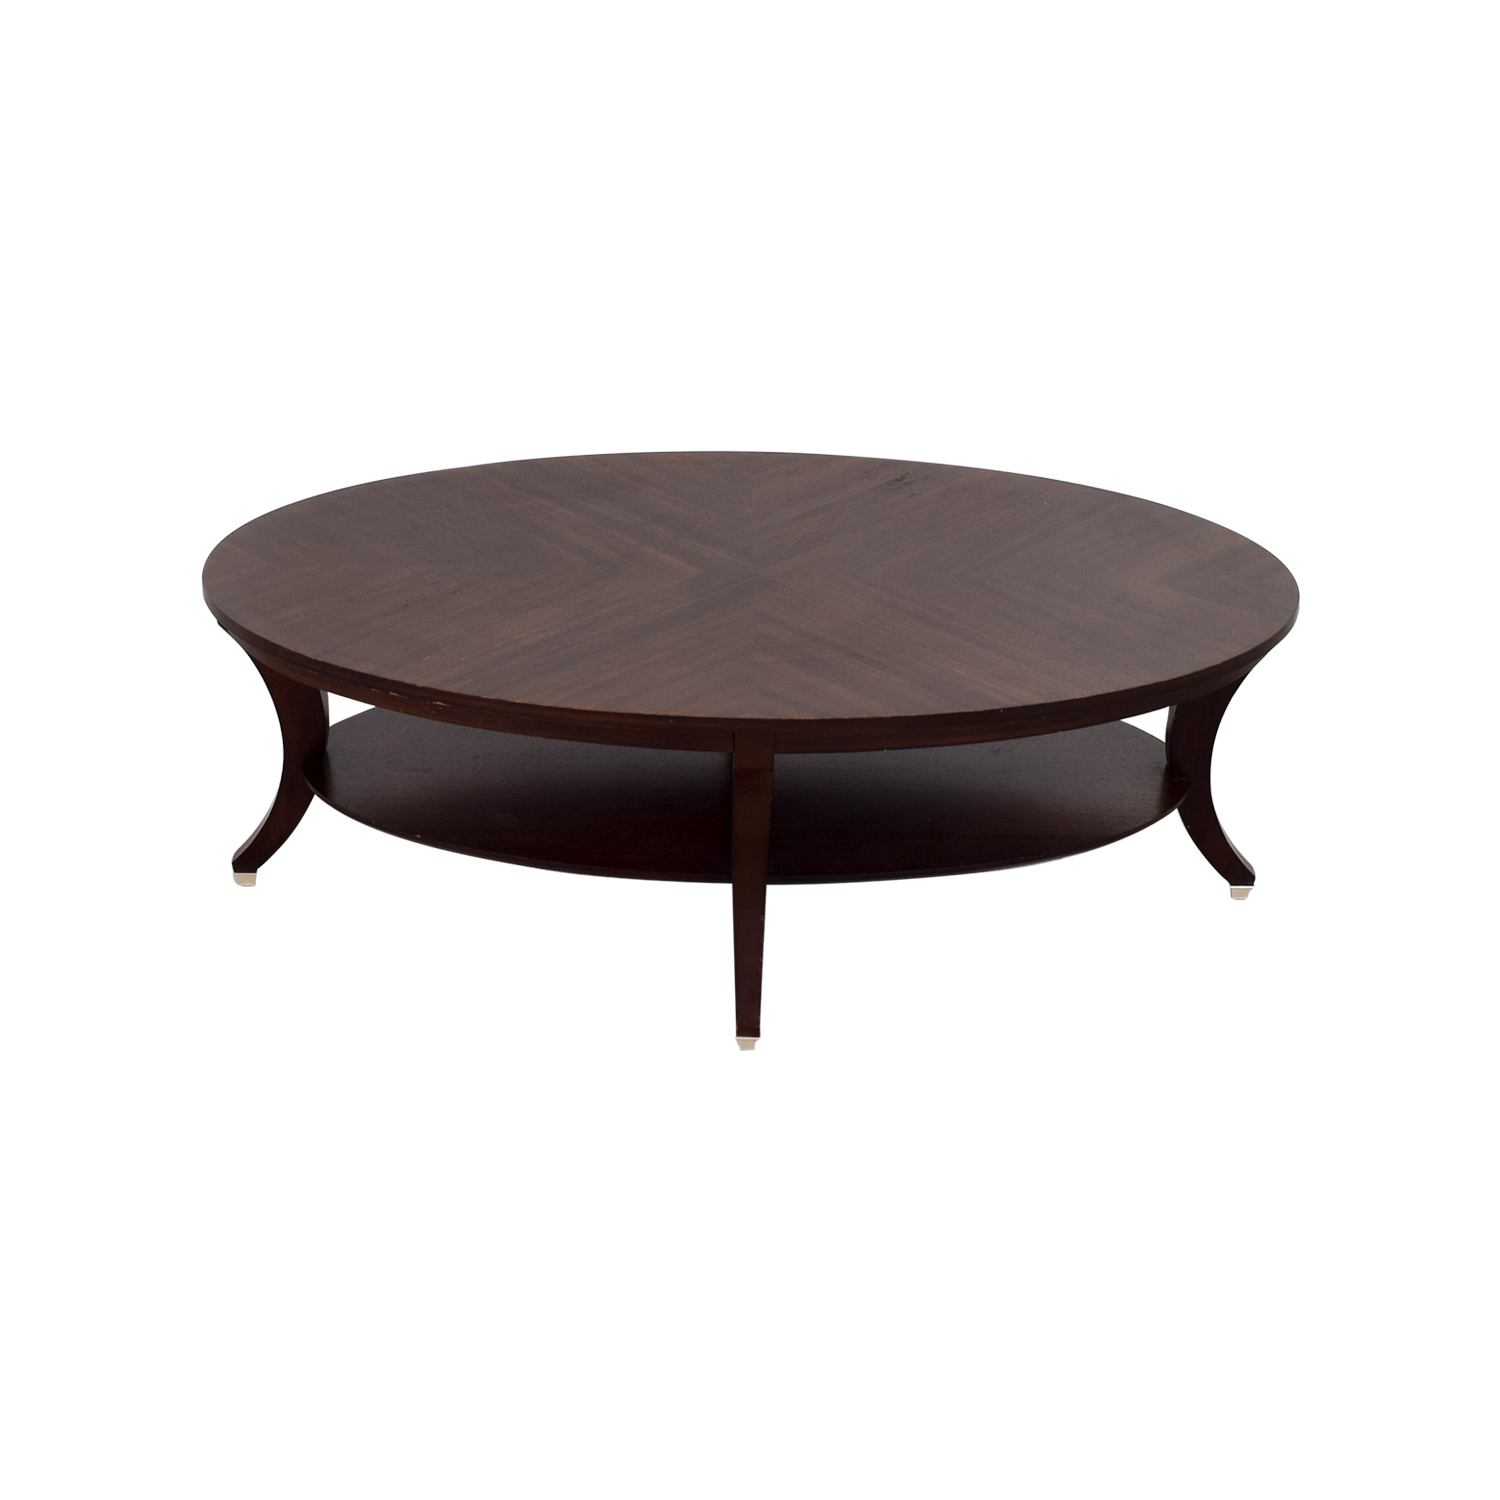 buy Ethan Allen Adler Oval Coffee Table Ethan Allen Tables